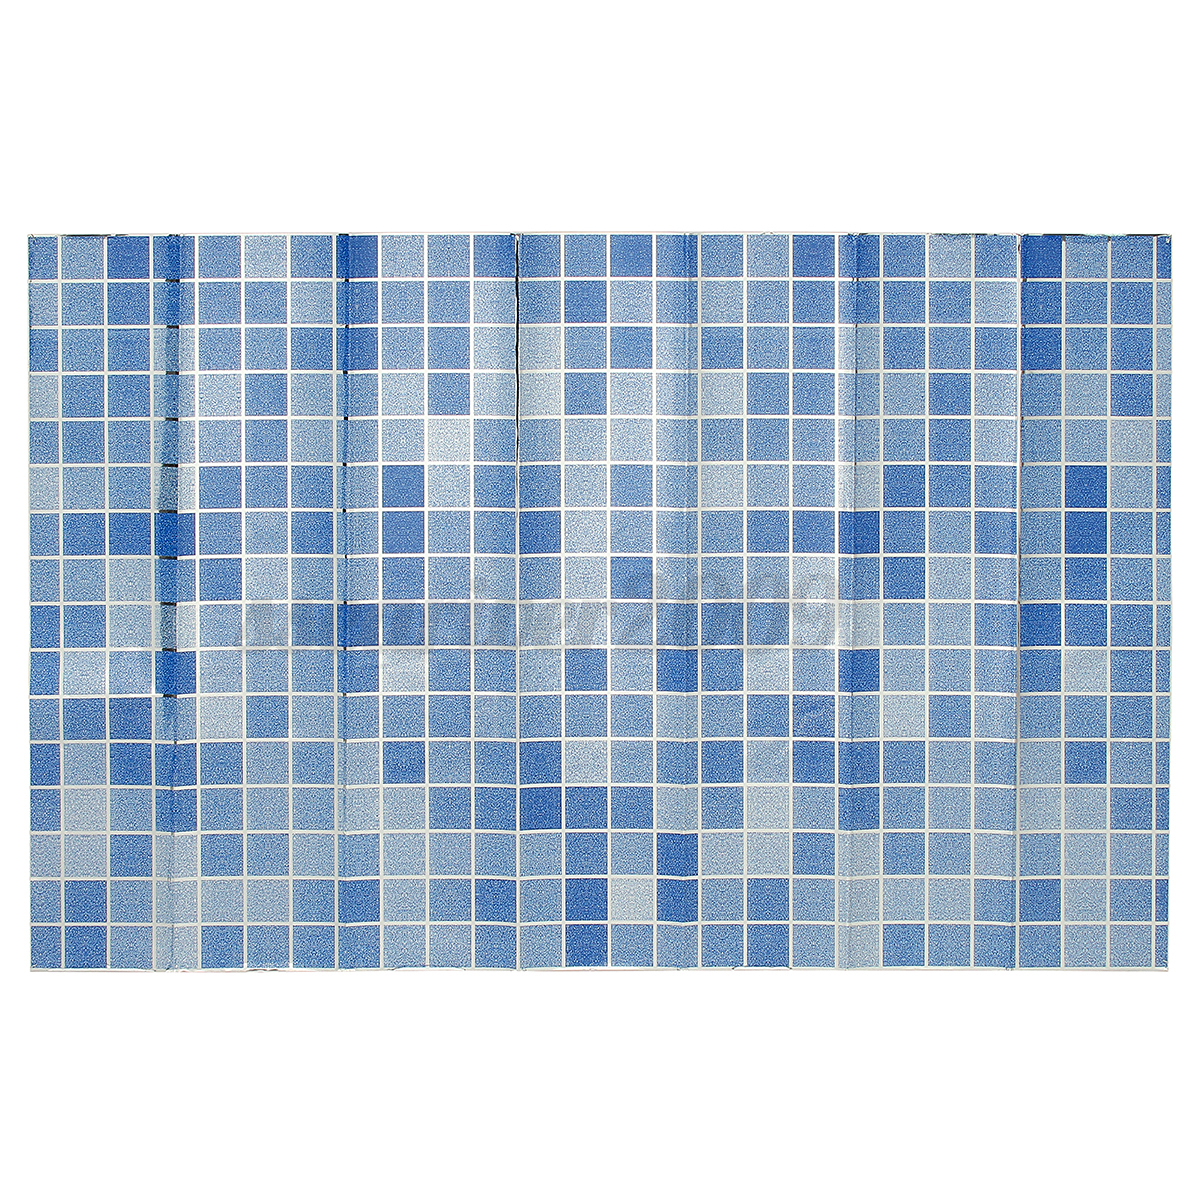 Self Adhesive 3d Mosaic Wall Paper Sticker Tile Floor